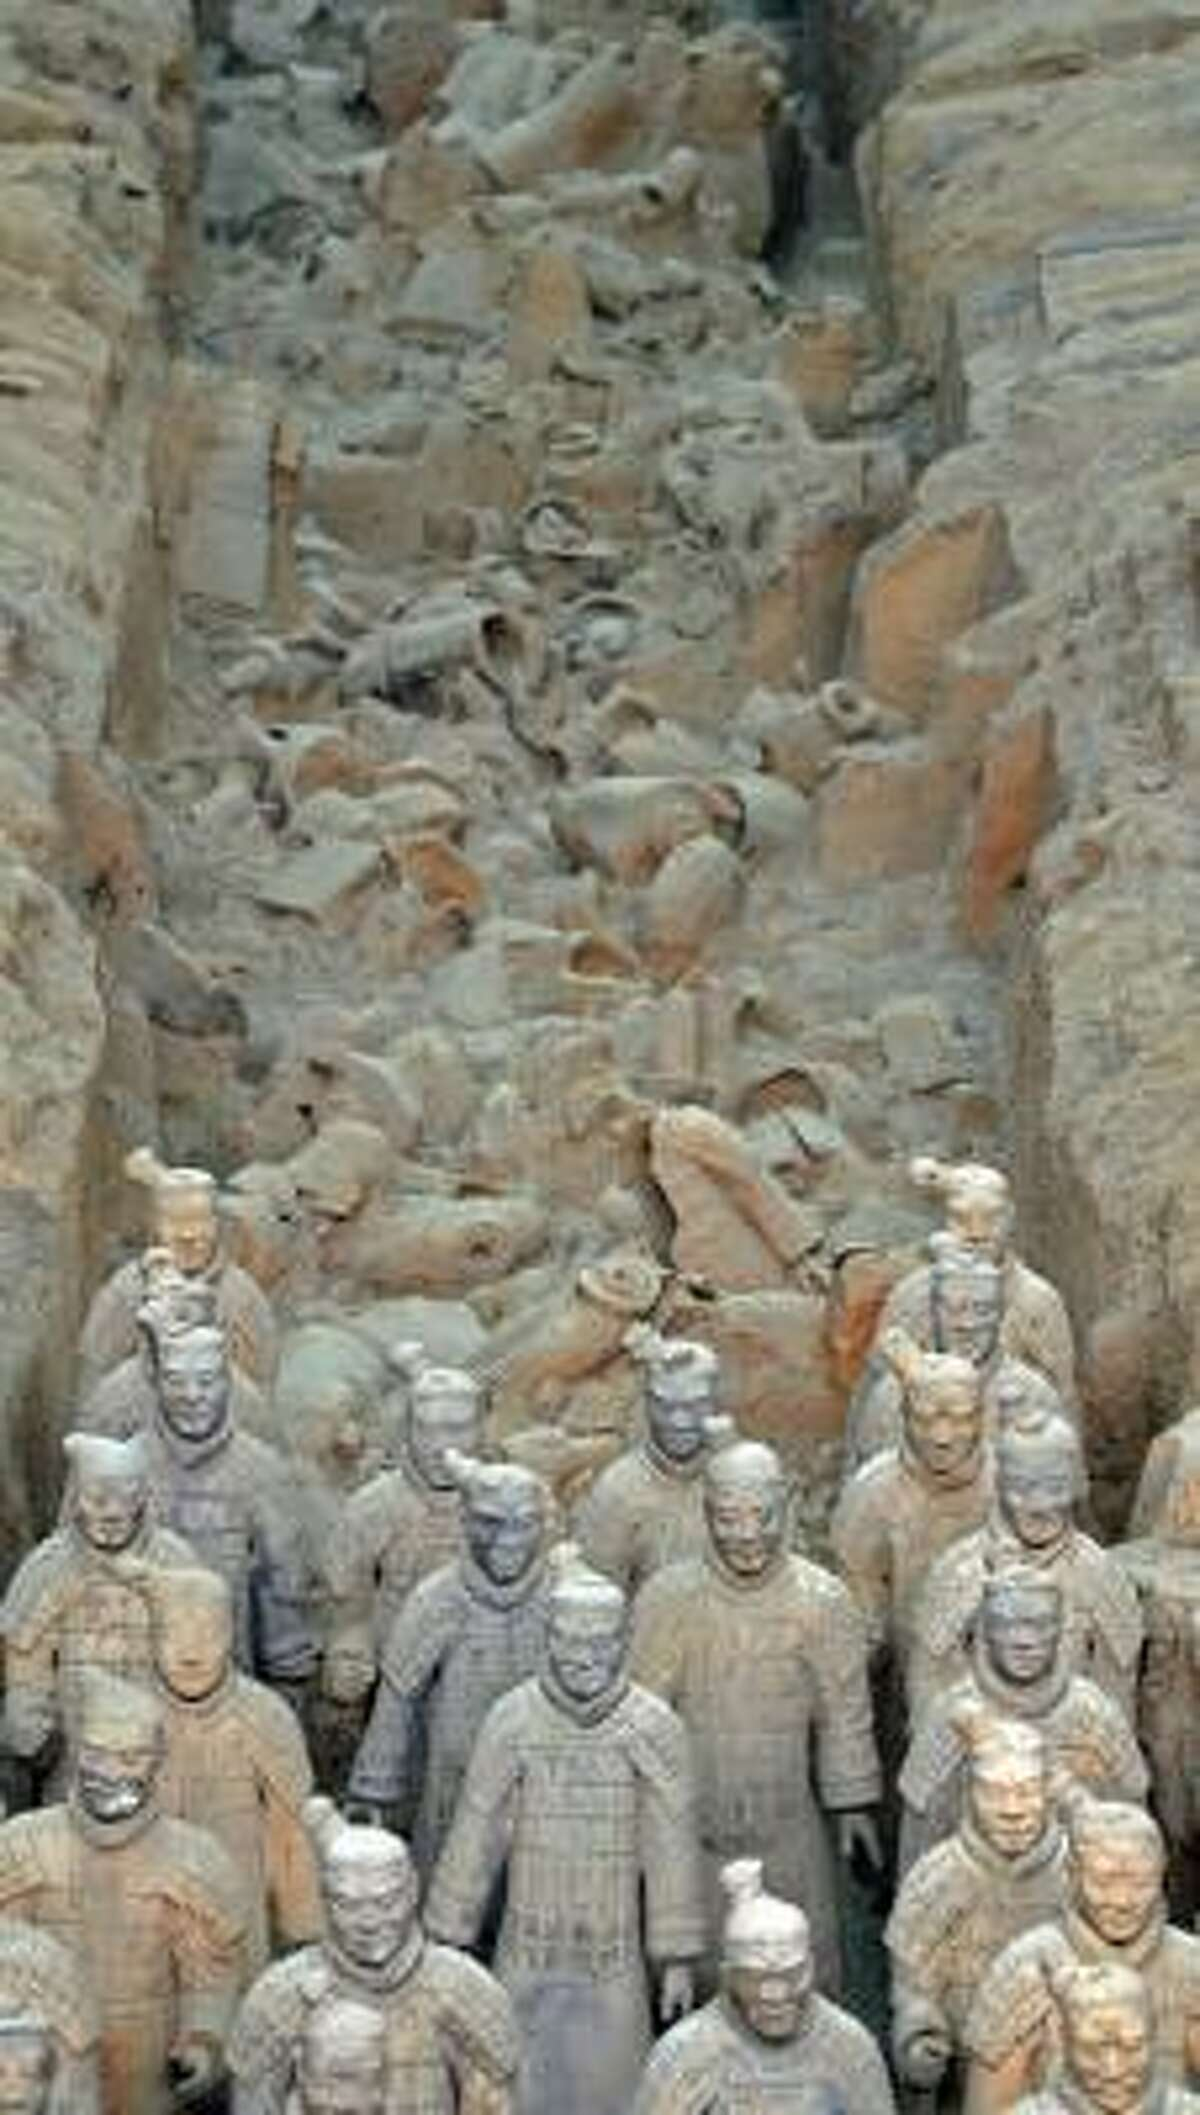 An exhibit of life-size clay sculptures from the tomb of Emperor Qin Shihuangdi will go on exhibit in Houston in May 2009.